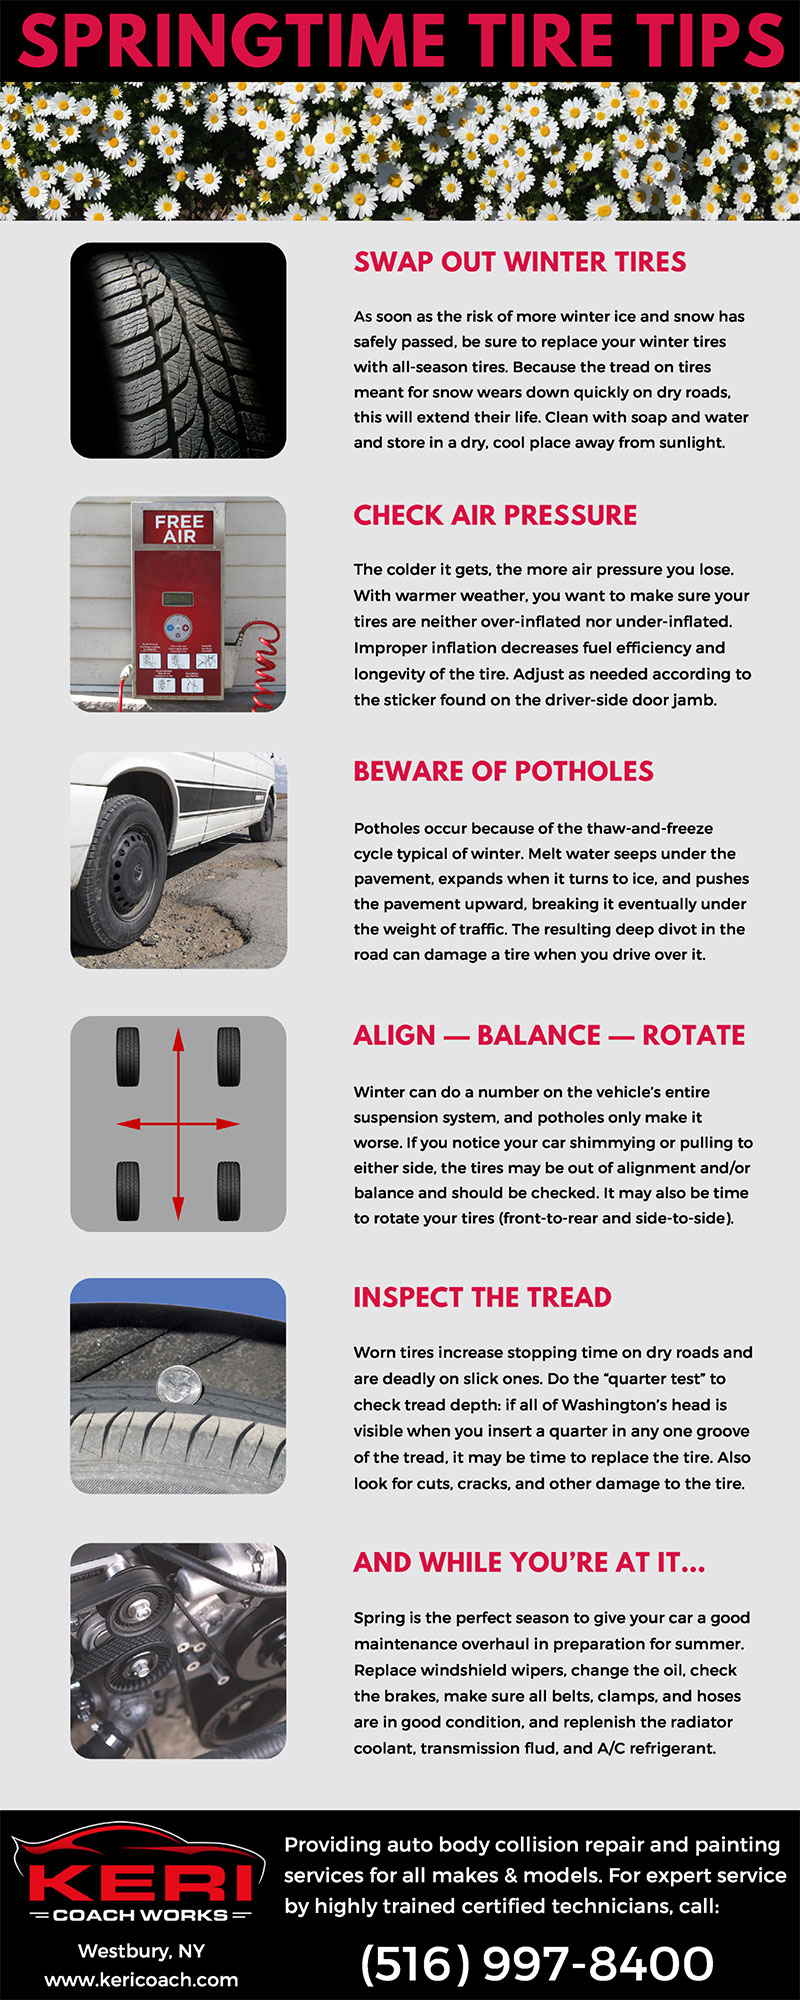 Springtime Tire Tips infographic